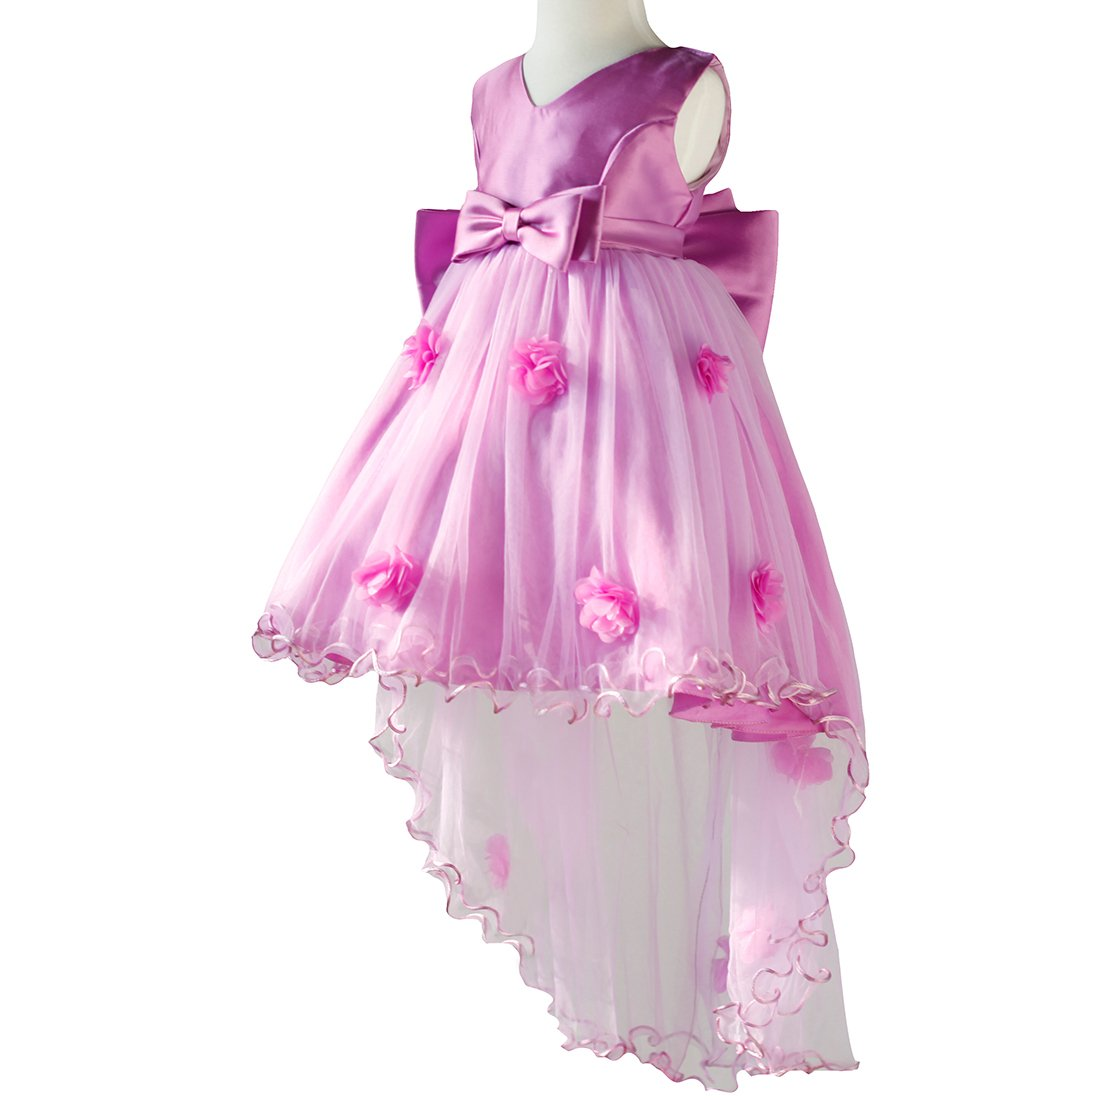 Flower Girl Big Bowknot Easter Princess Fishtail Lace Dress Chiffon Gown Long Girl Skirt for Pageant Wedding Party